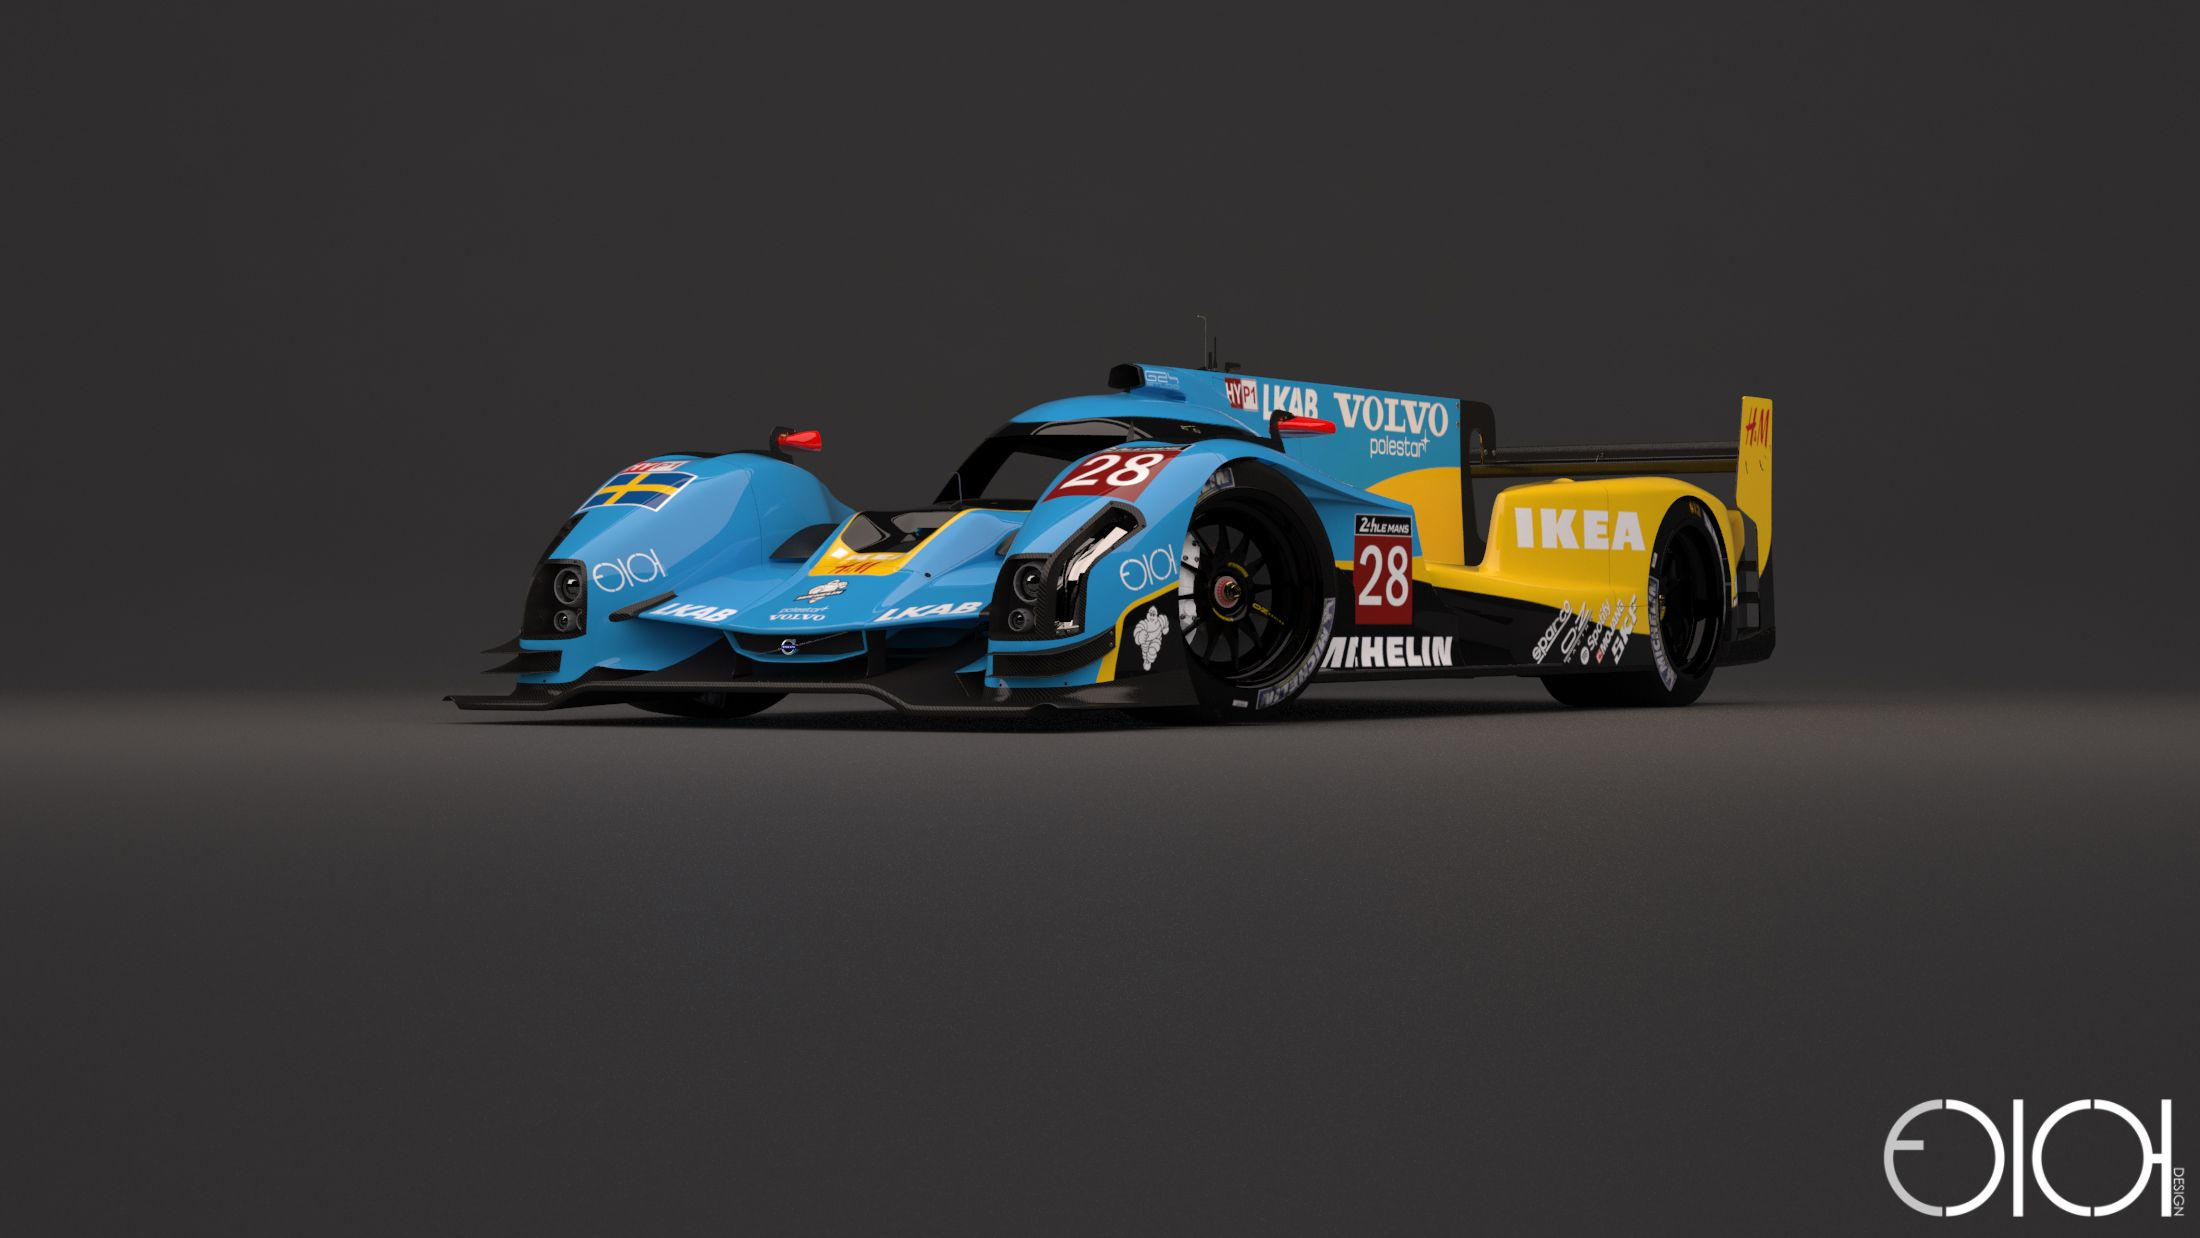 Ikea Le Mans This Stunning Volvo Lmp1 Concept Design Needs To Be A Thing